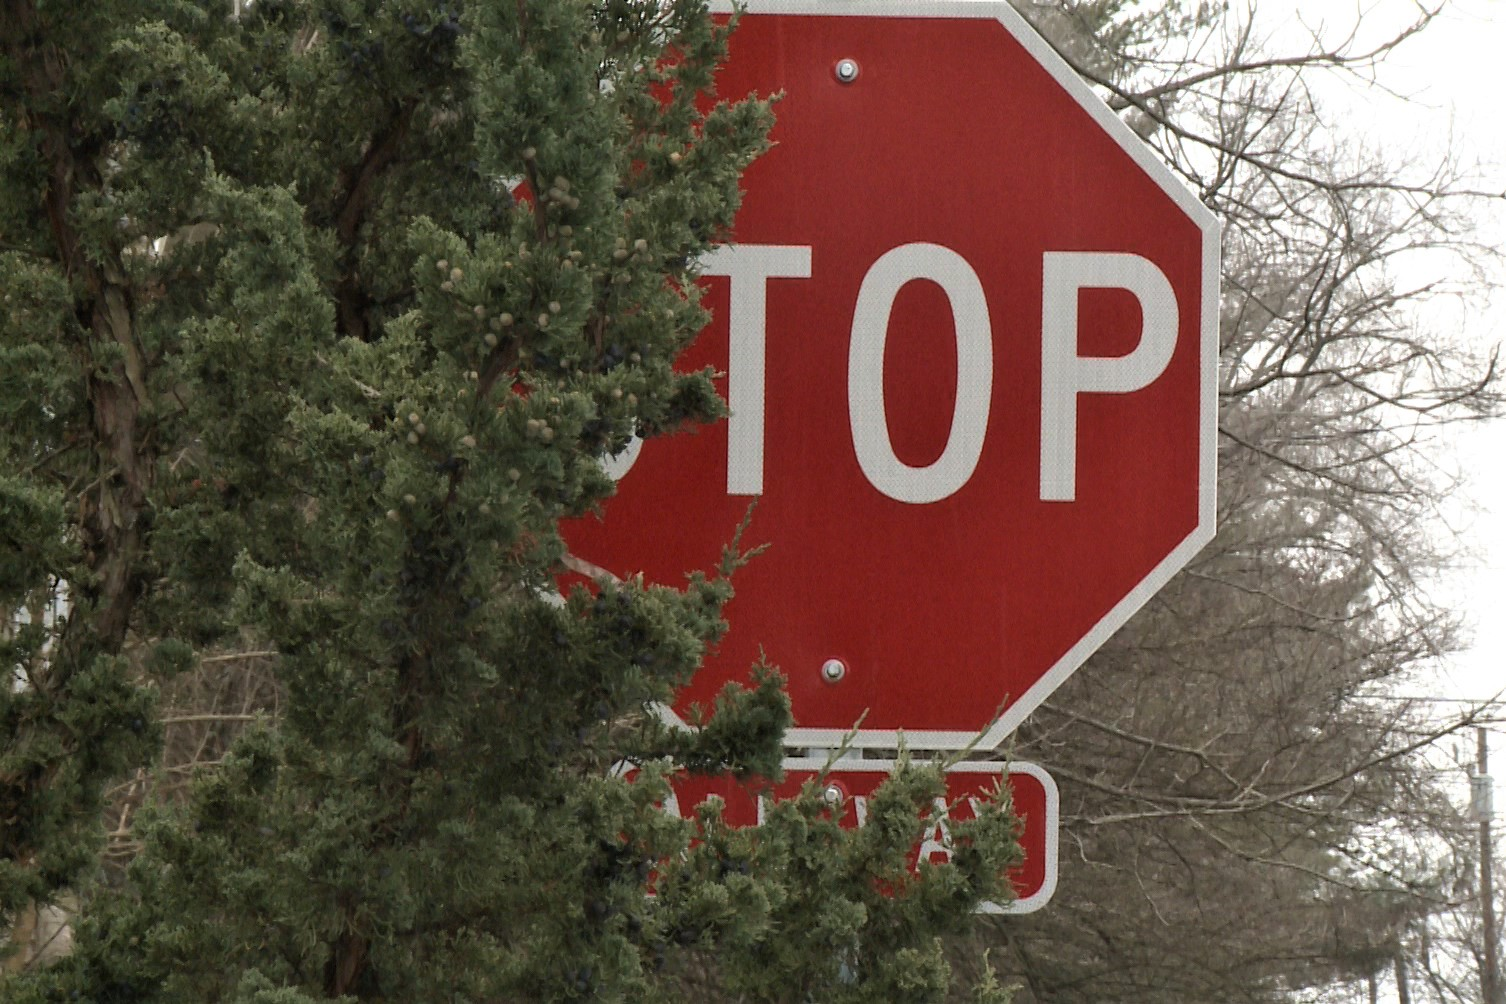 A stop sign in Bloomington partially obscured by  tree branches.